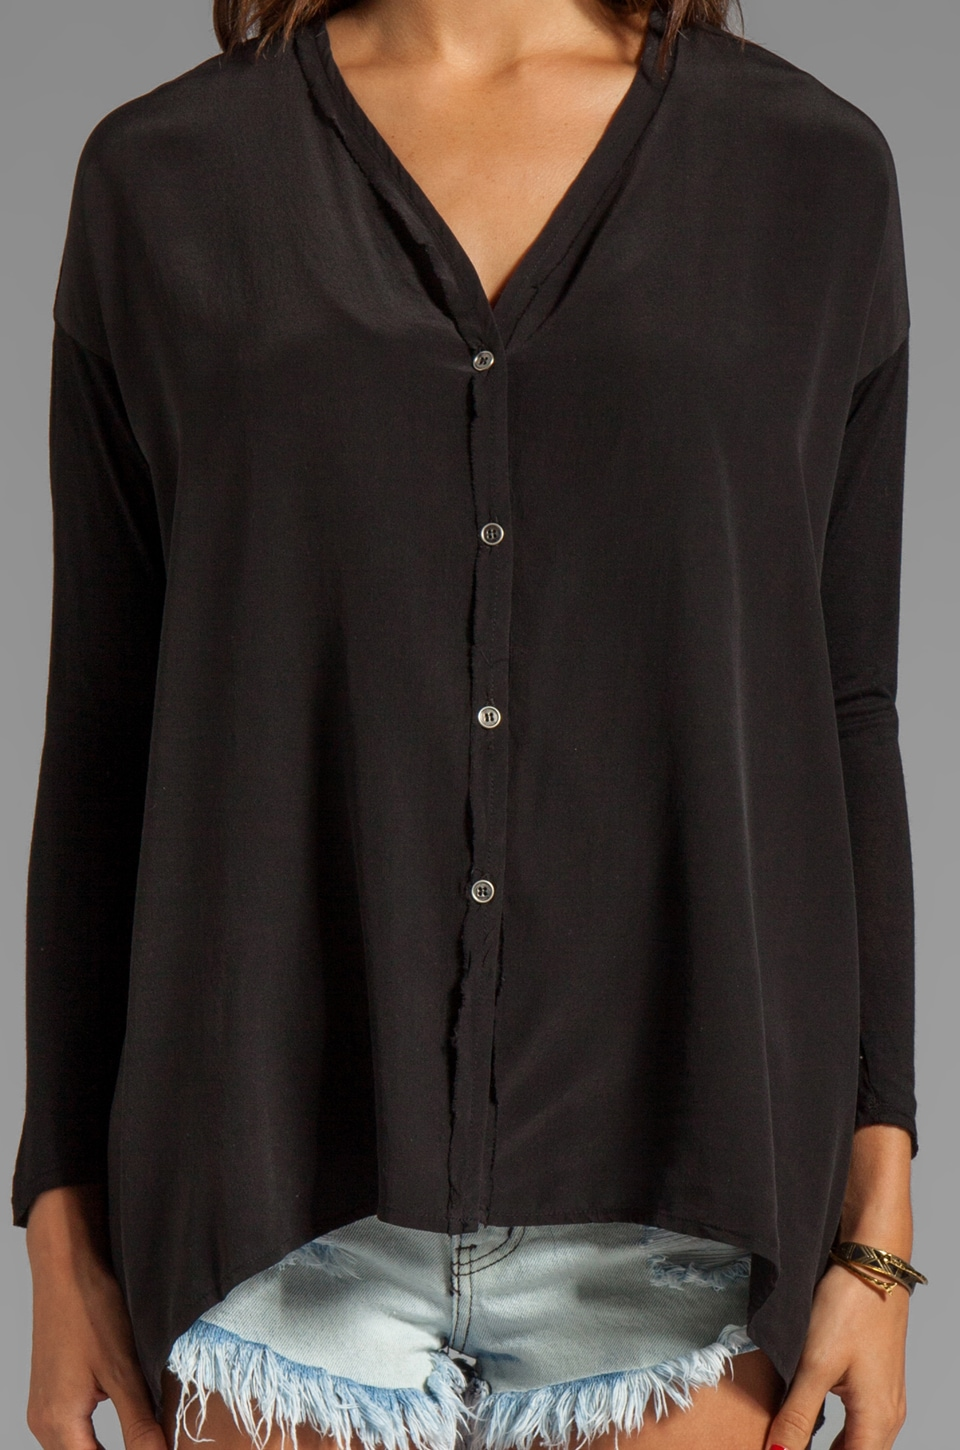 dolan Mixed Media Oversized Button Down Tee in Black